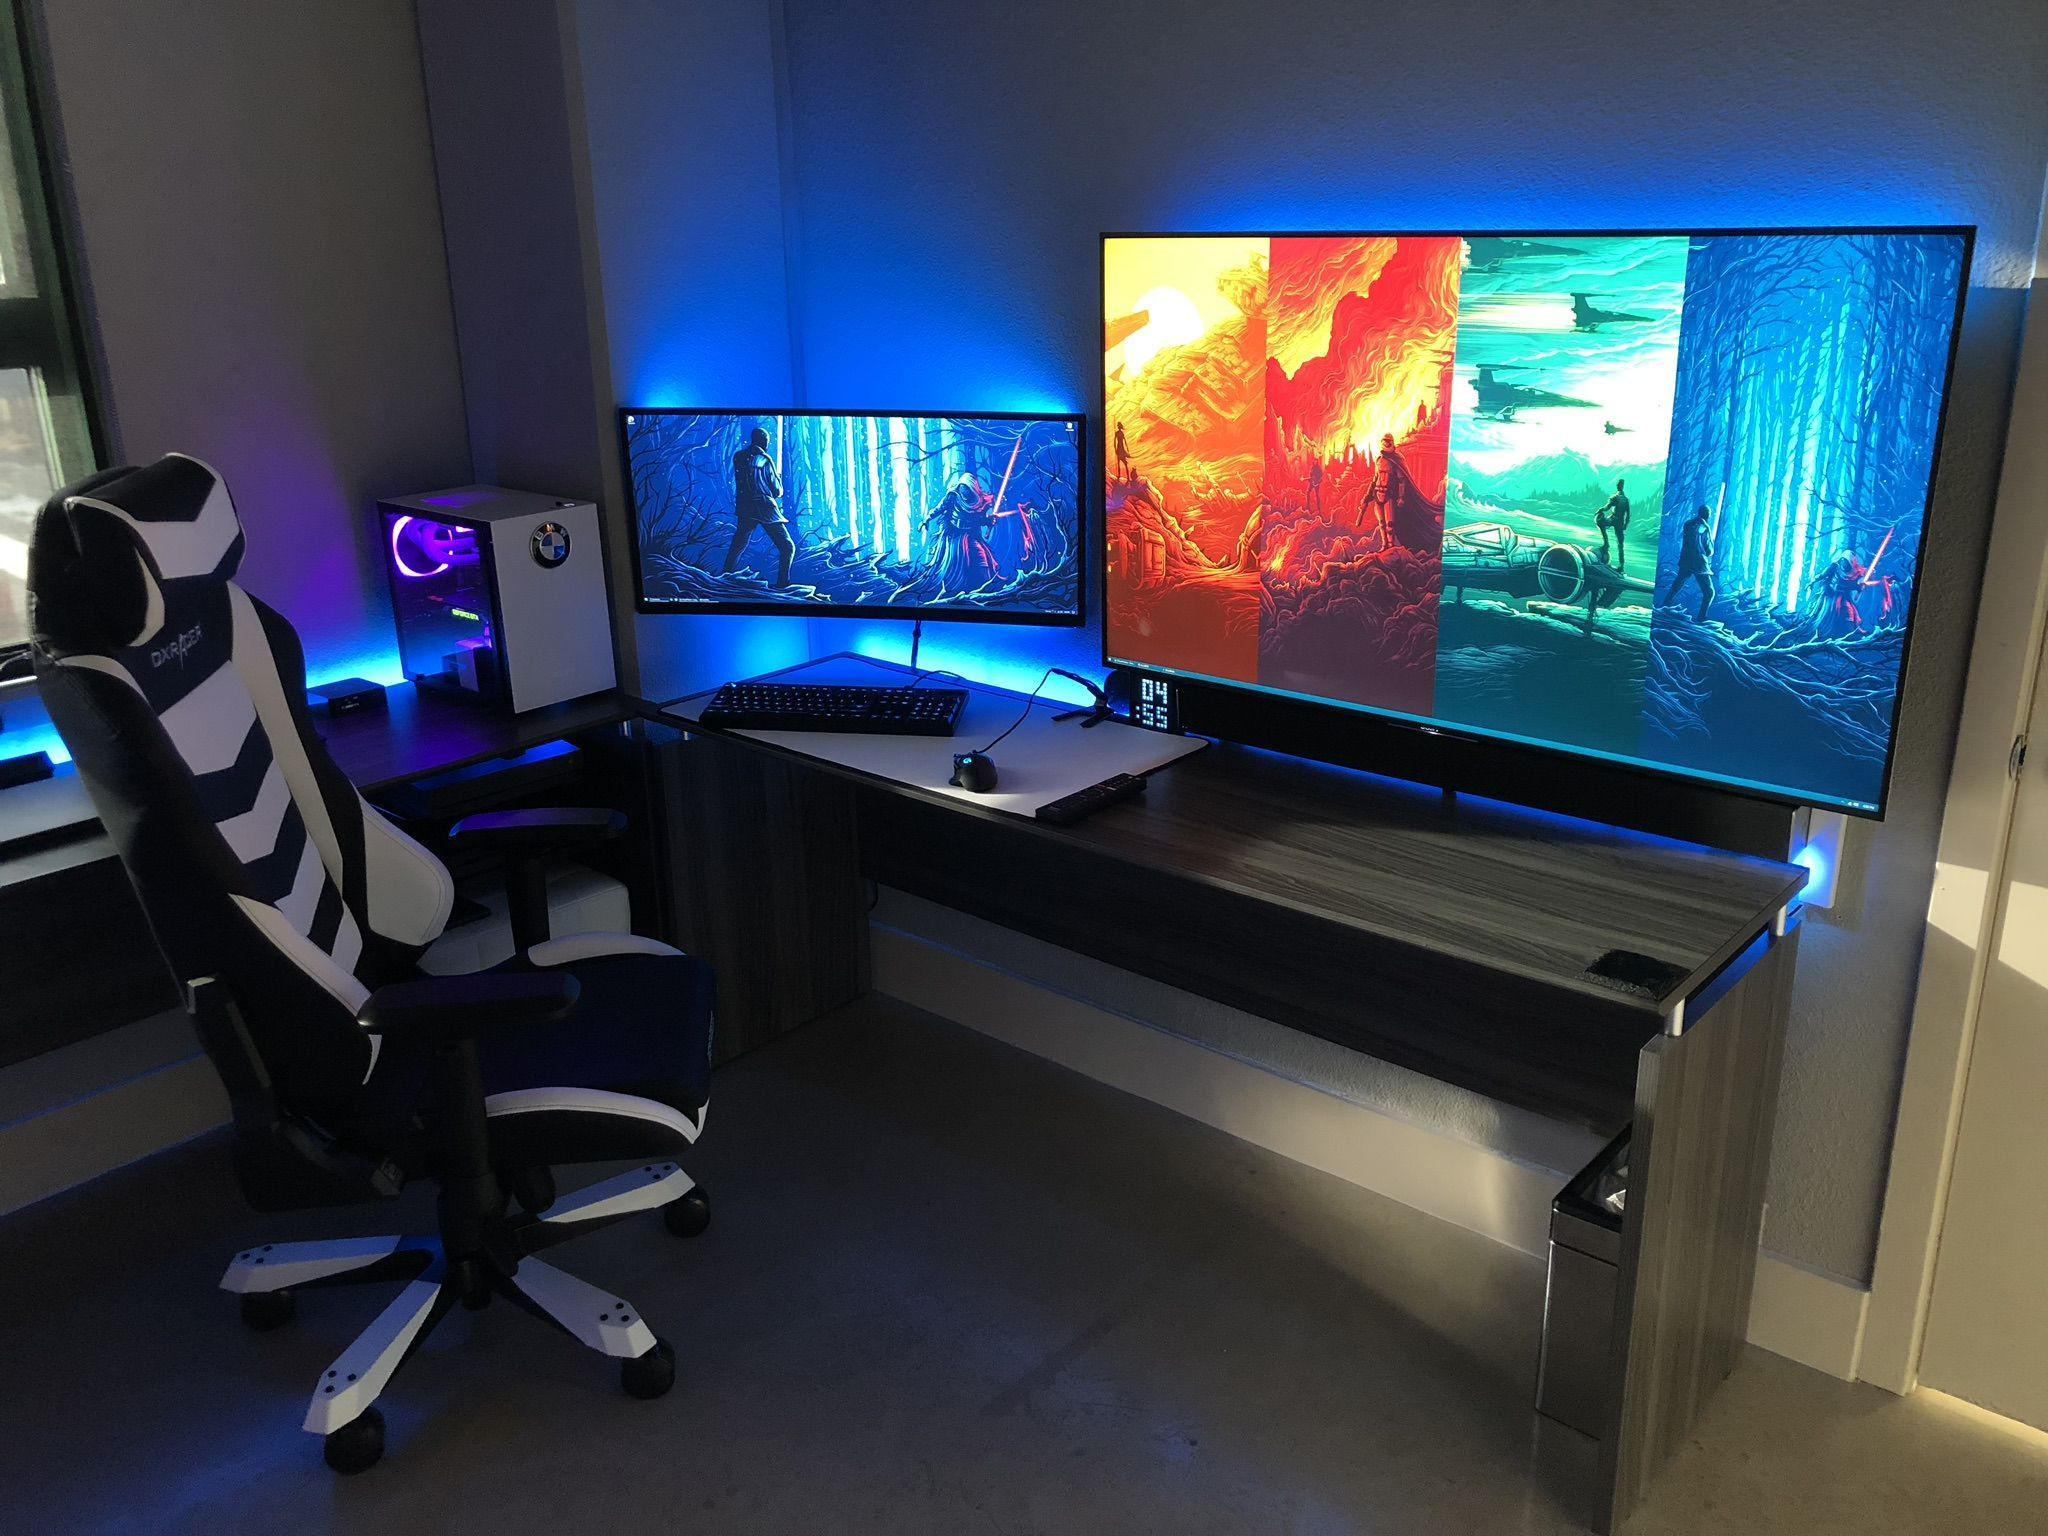 Recommended Video Game Room Ideas Homedecor Video Game Room Videogameroom Gameroom Modern Ideas In Video Game Rooms Video Game Room Game Room Decor